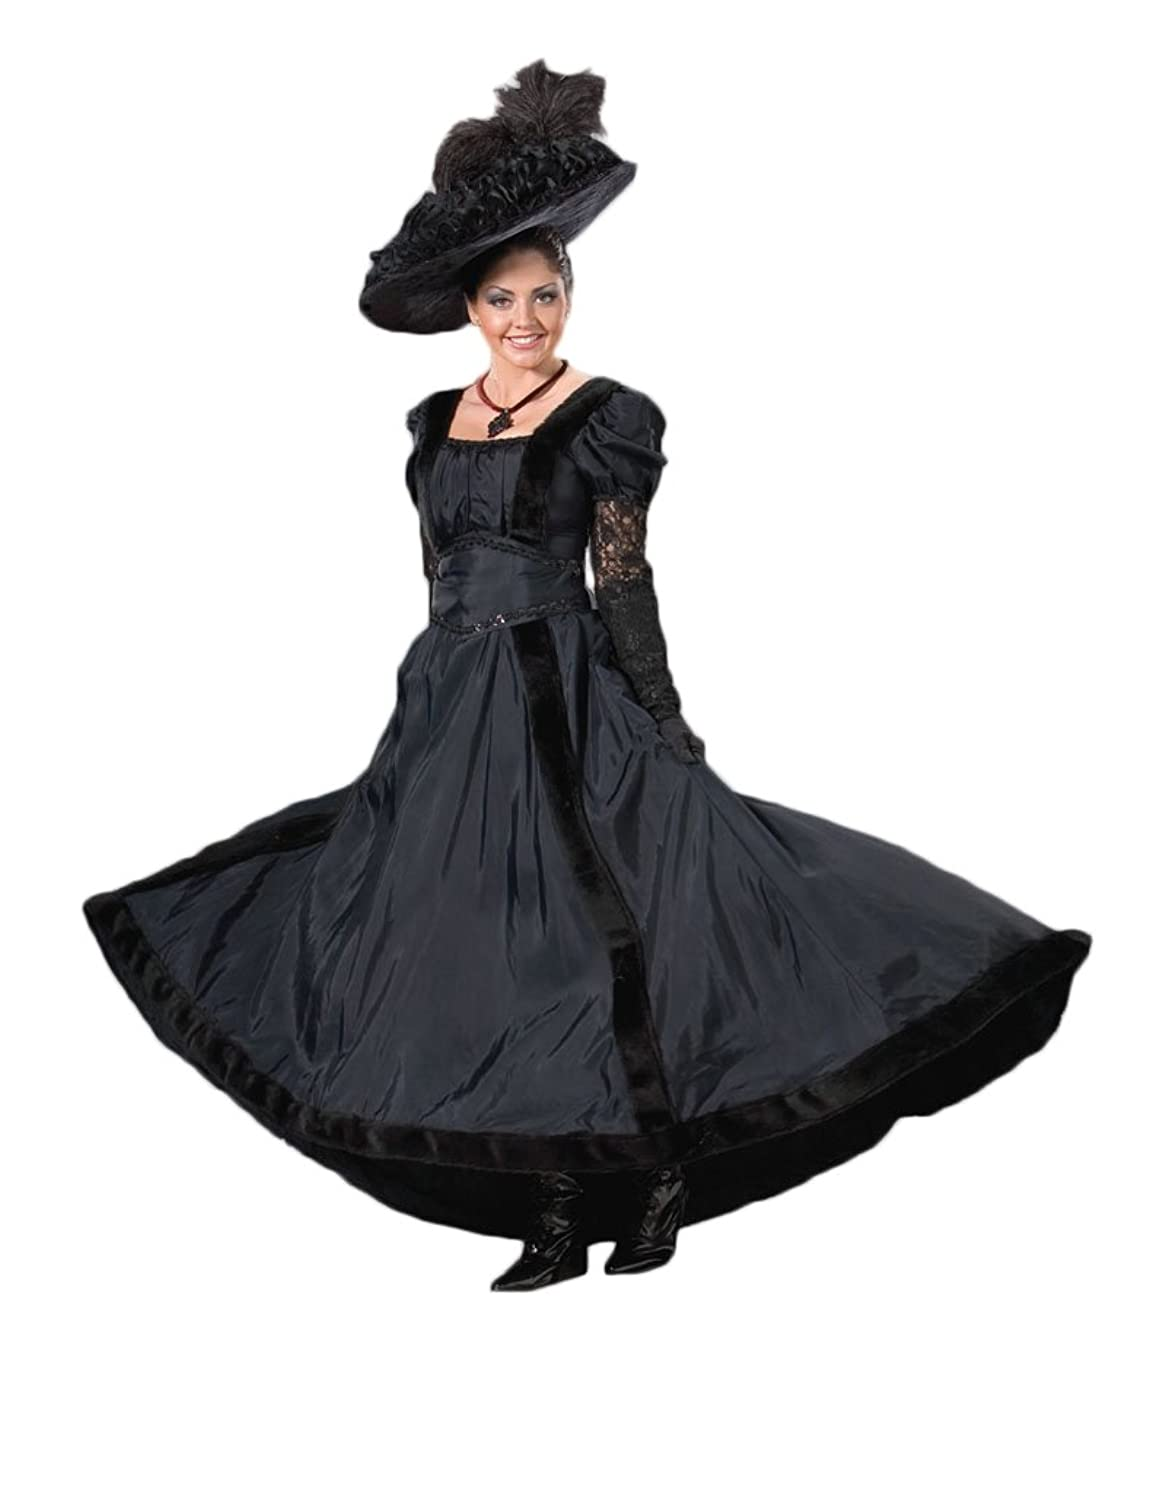 TitanicStyleDressesforSale  Victorian Titanic Dress $289.99 AT vintagedancer.com